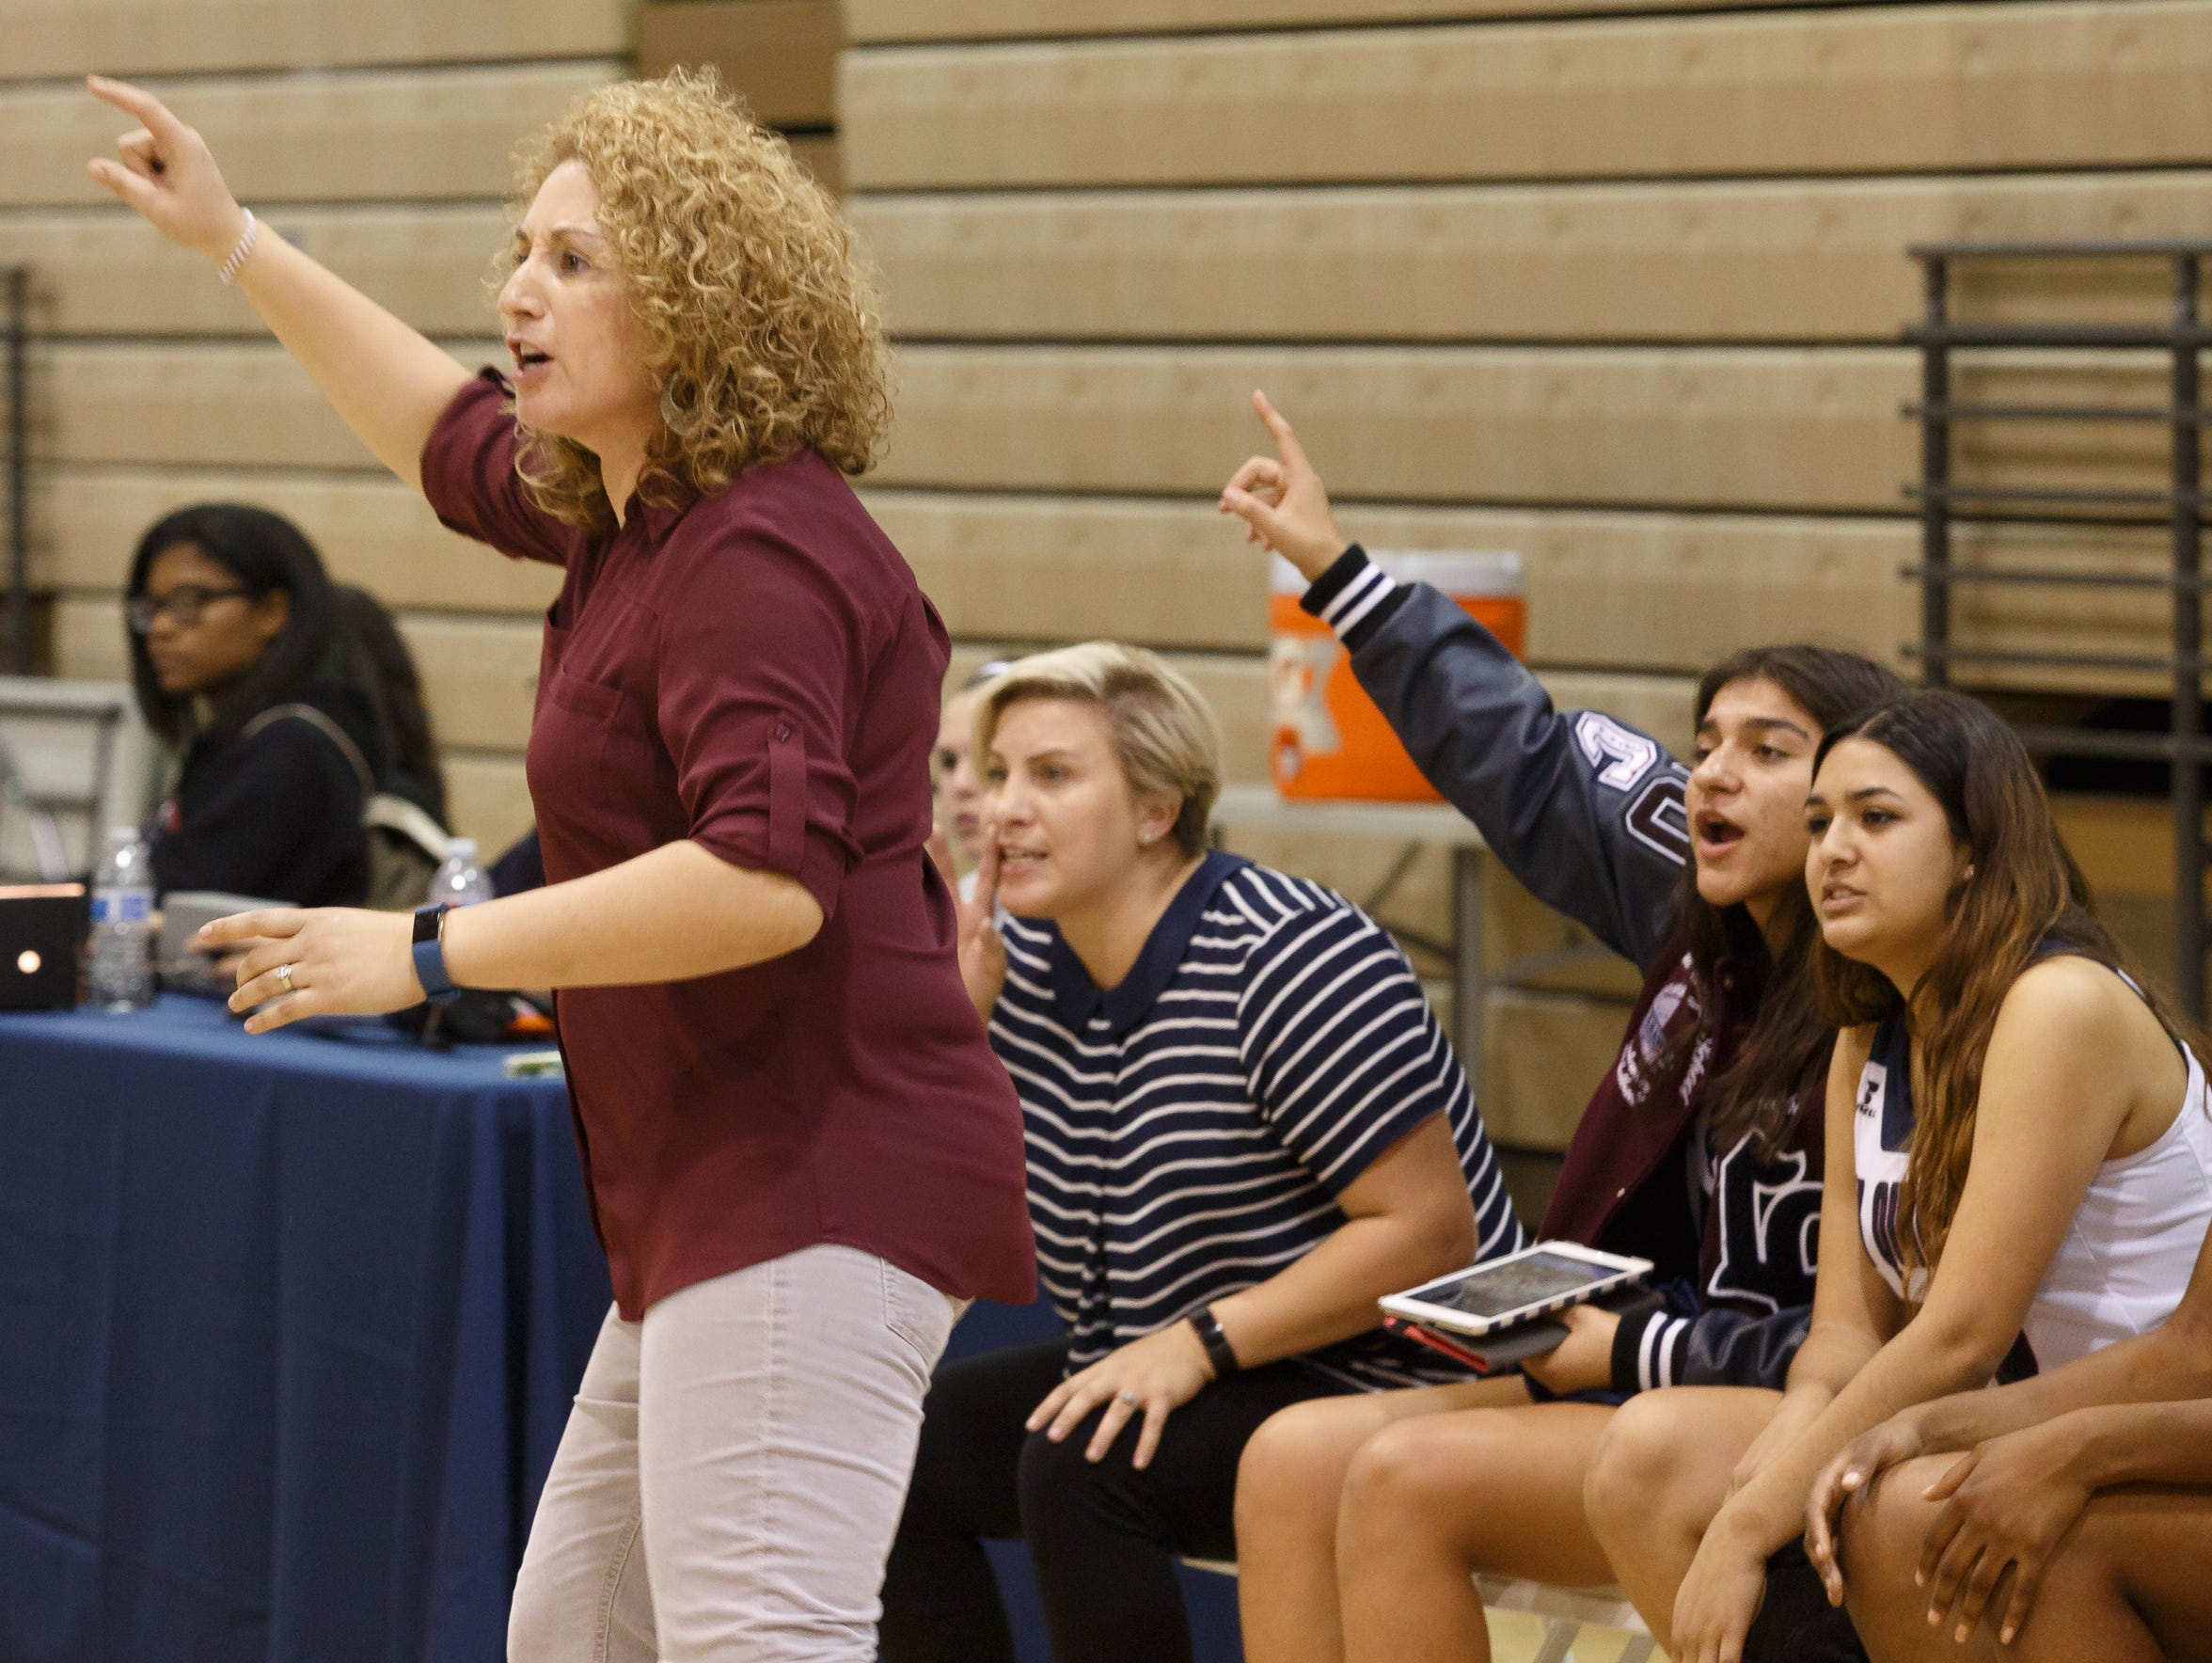 Coach Viveros coaches from the sidelines during a La